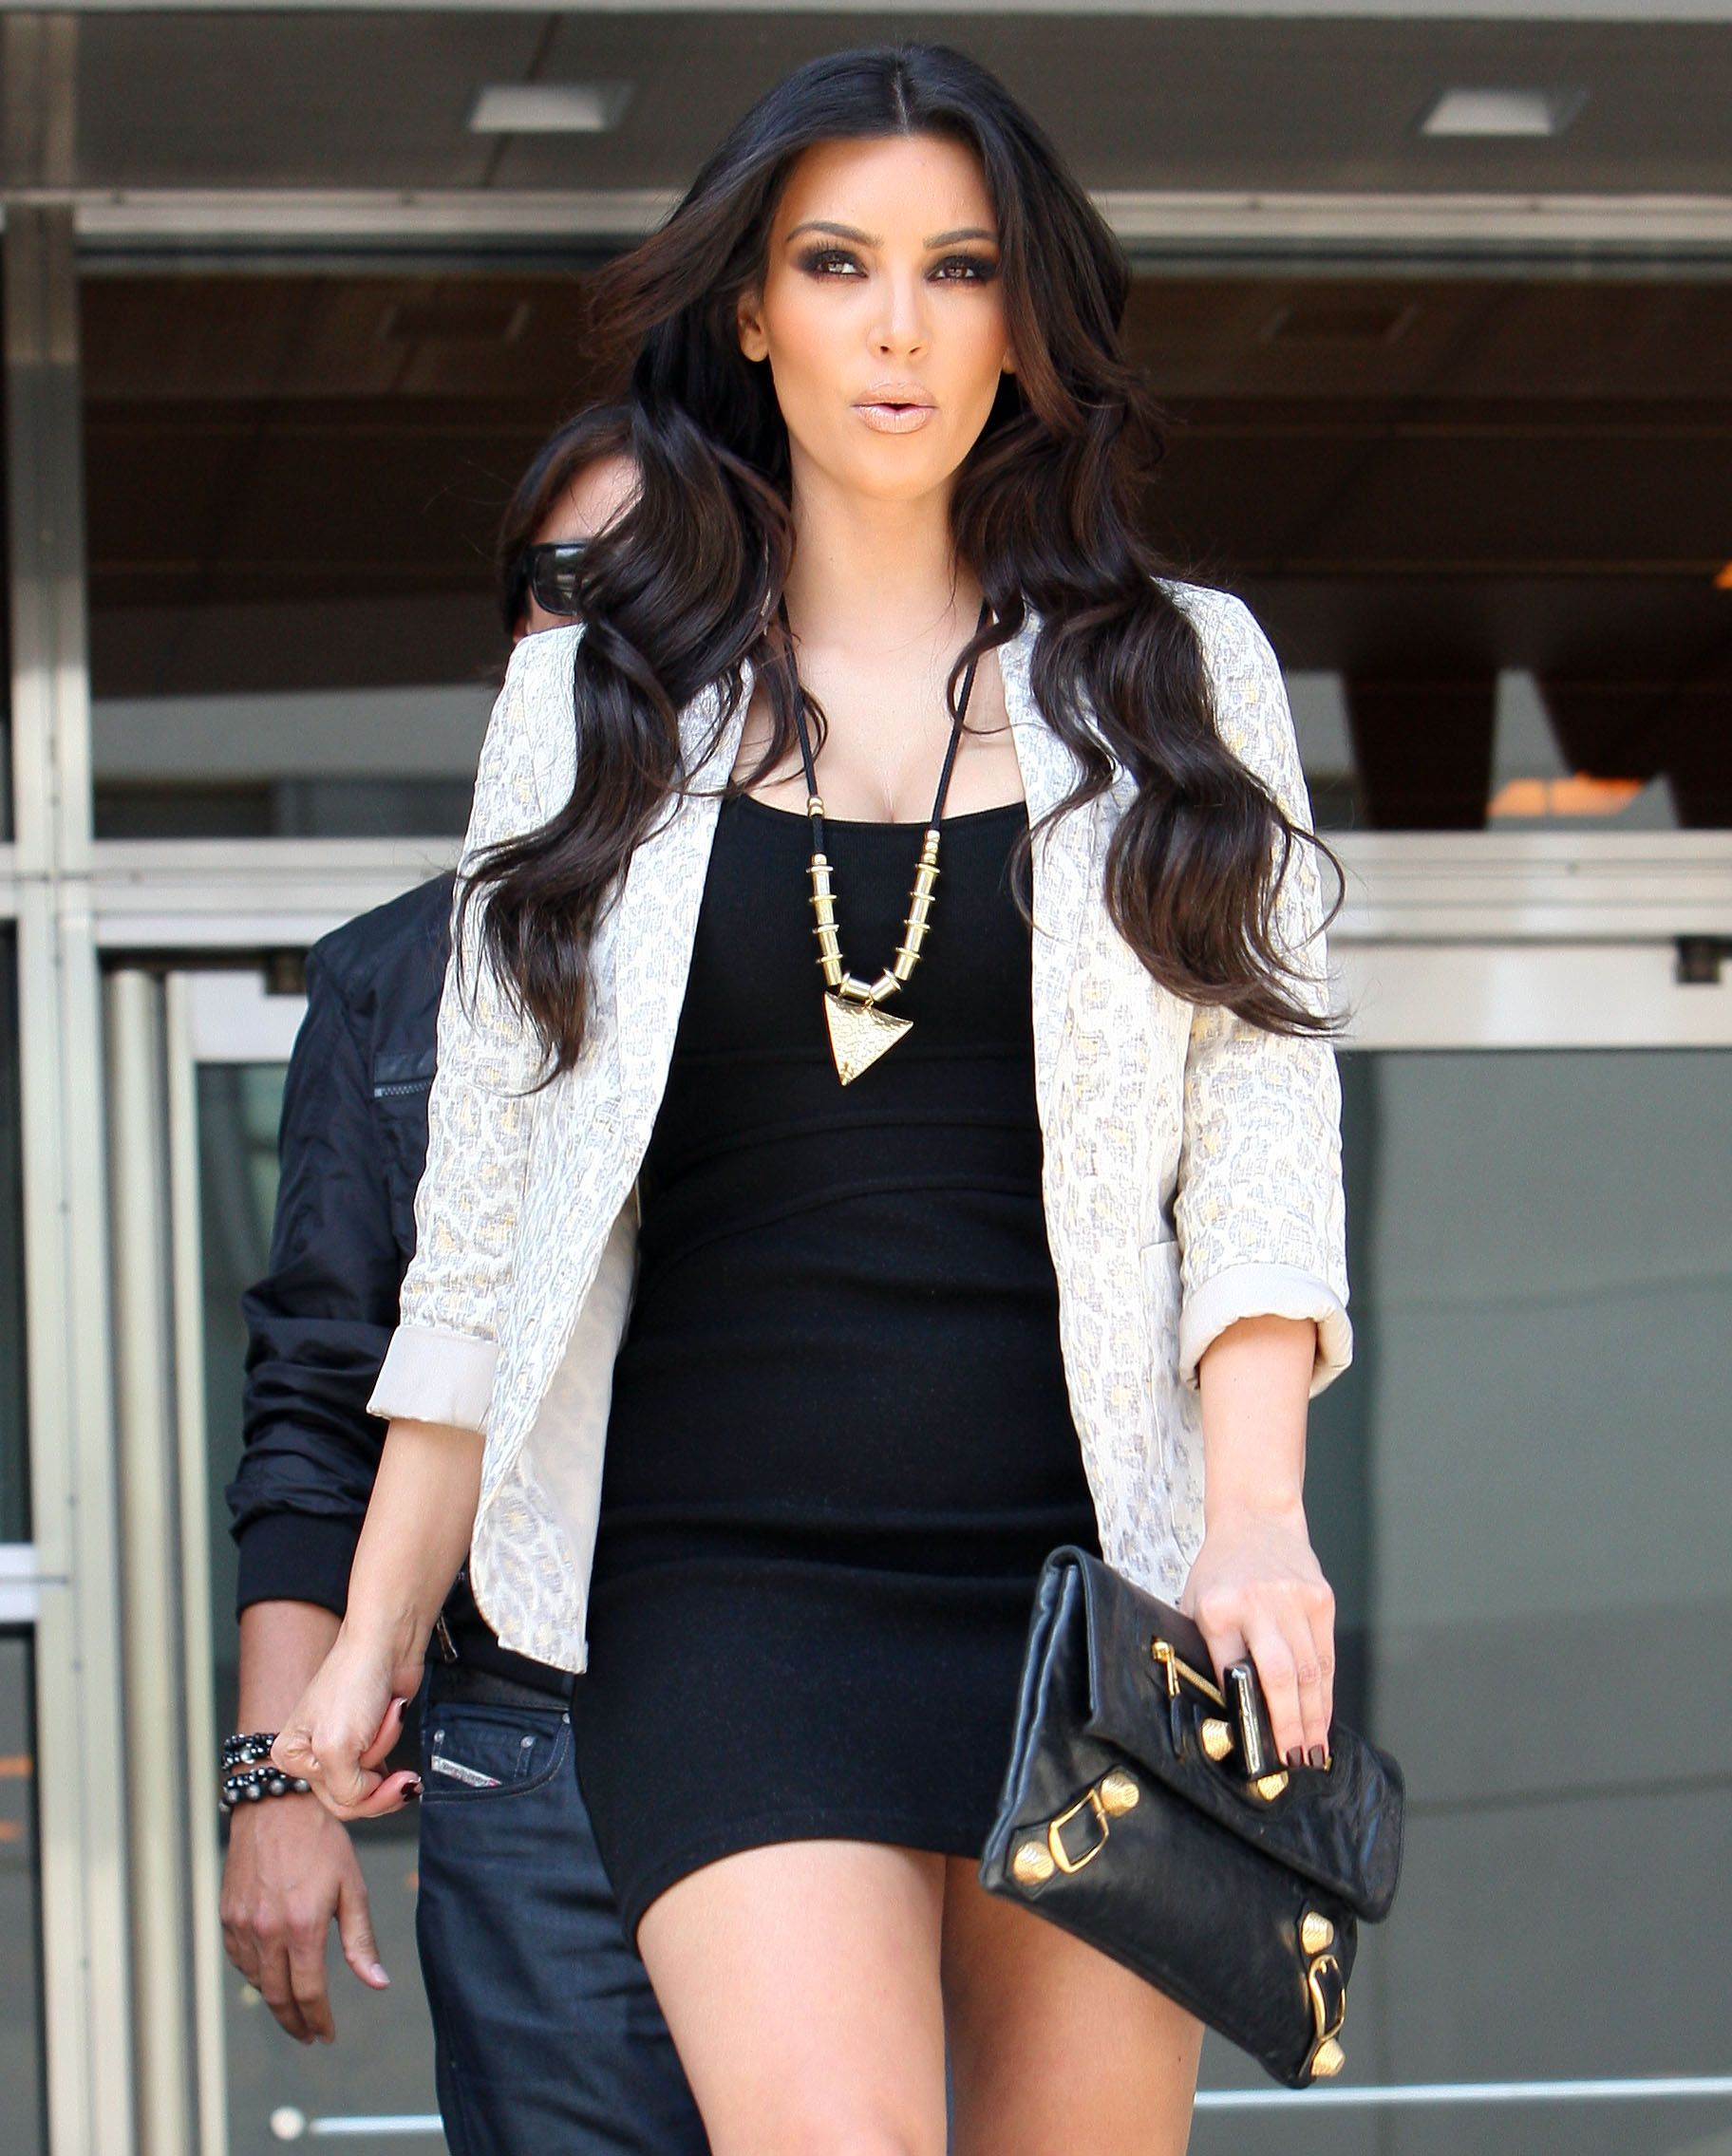 302211d1281633529-kim-kardashian-black-dress-white-jacket-headed ...